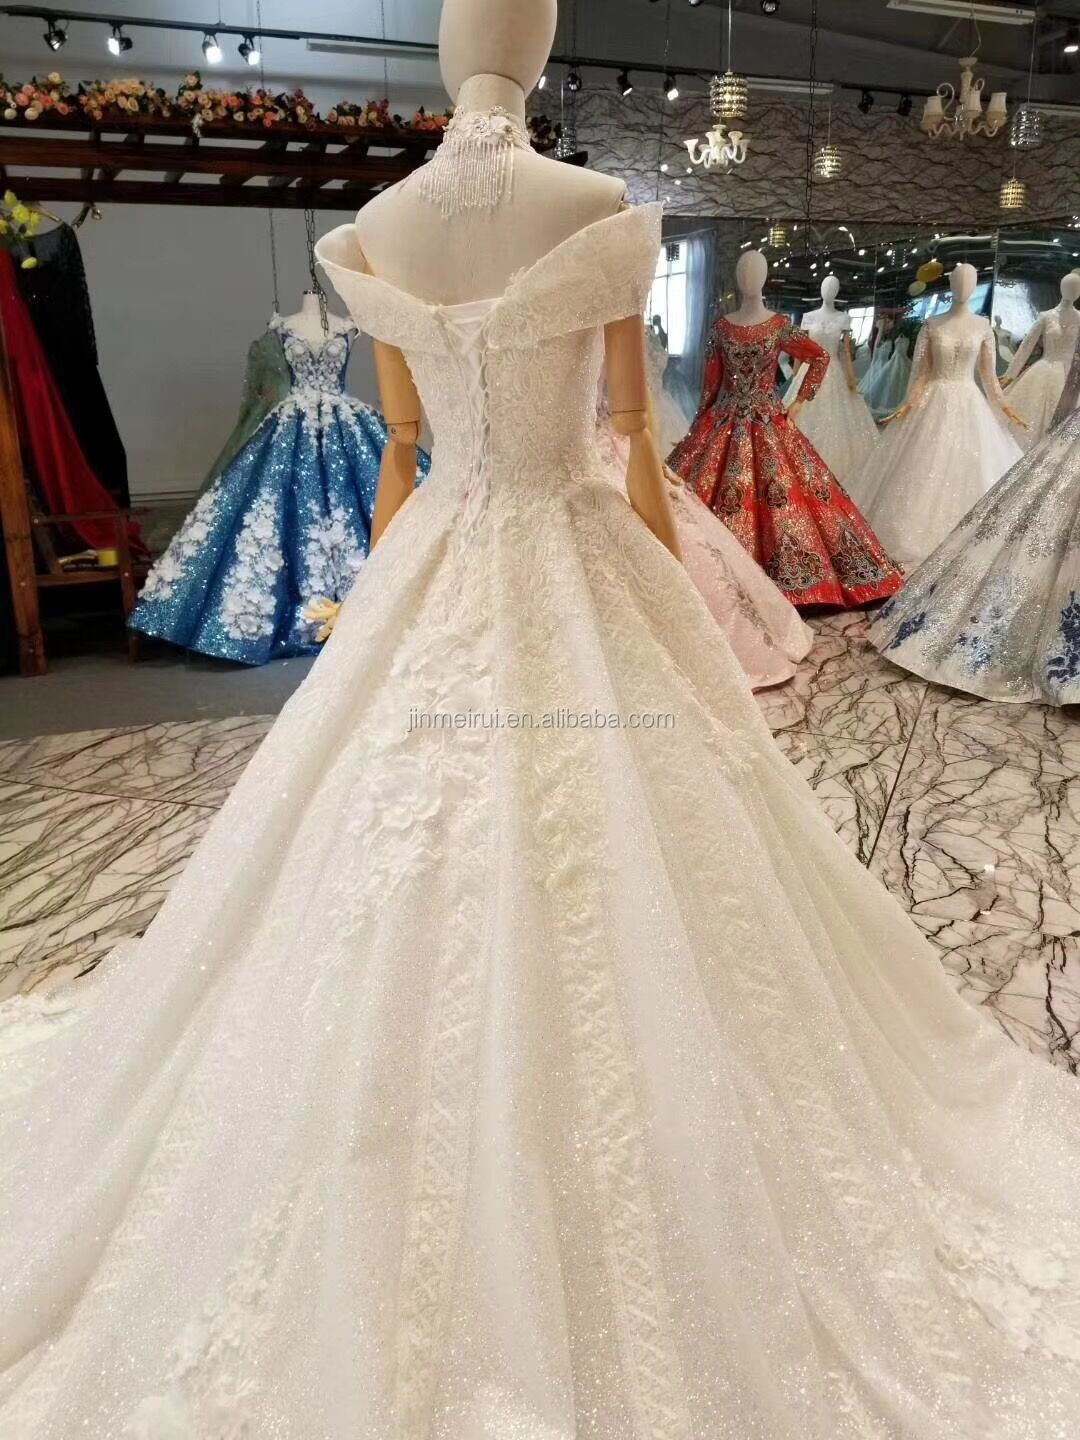 Luxury Wedding Dress with Cap Sleeves High Quality Lace with 3D Flowers Shining Crystals Ball Gown Wedding Dresses